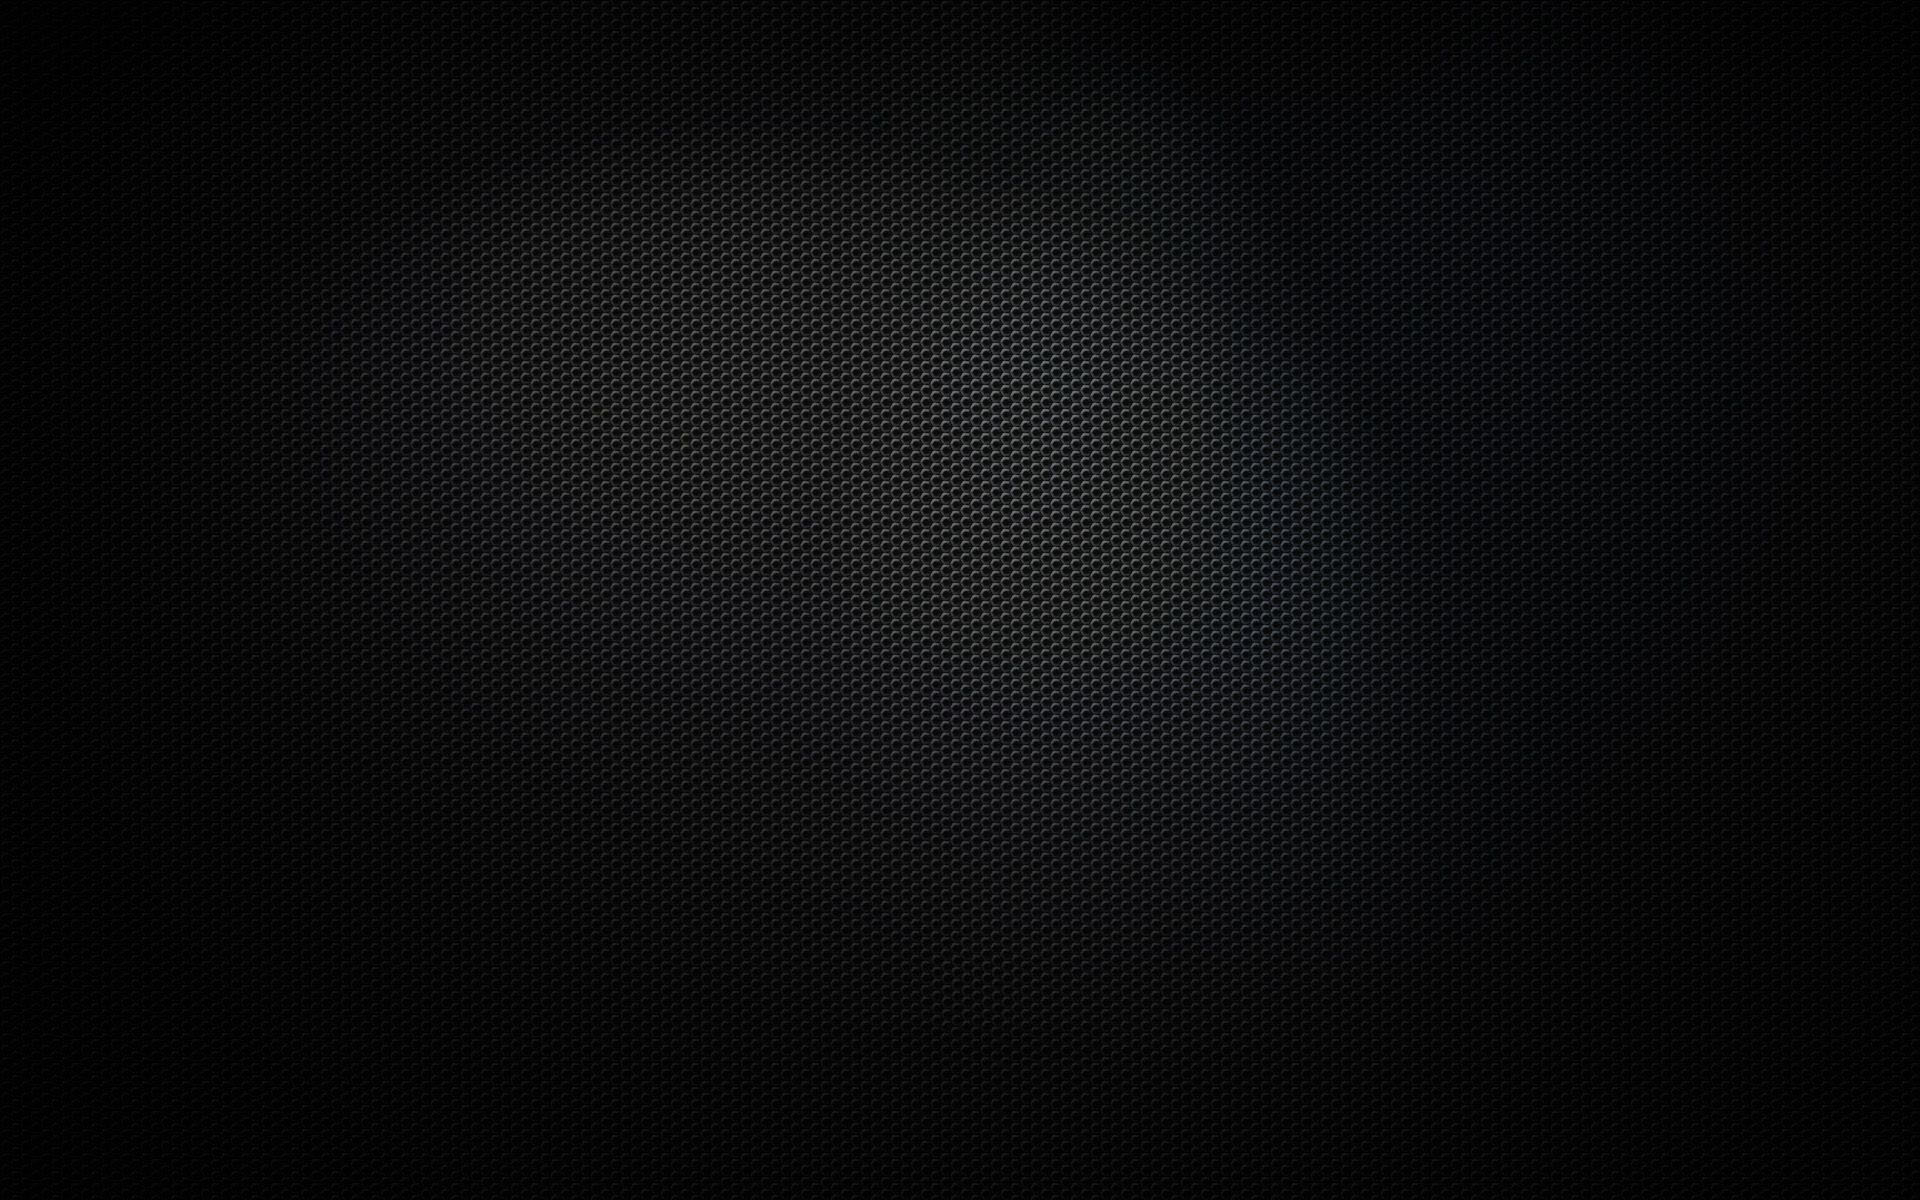 Black Abstract HD Wallpapers Black Abstract high quality 1920x1200